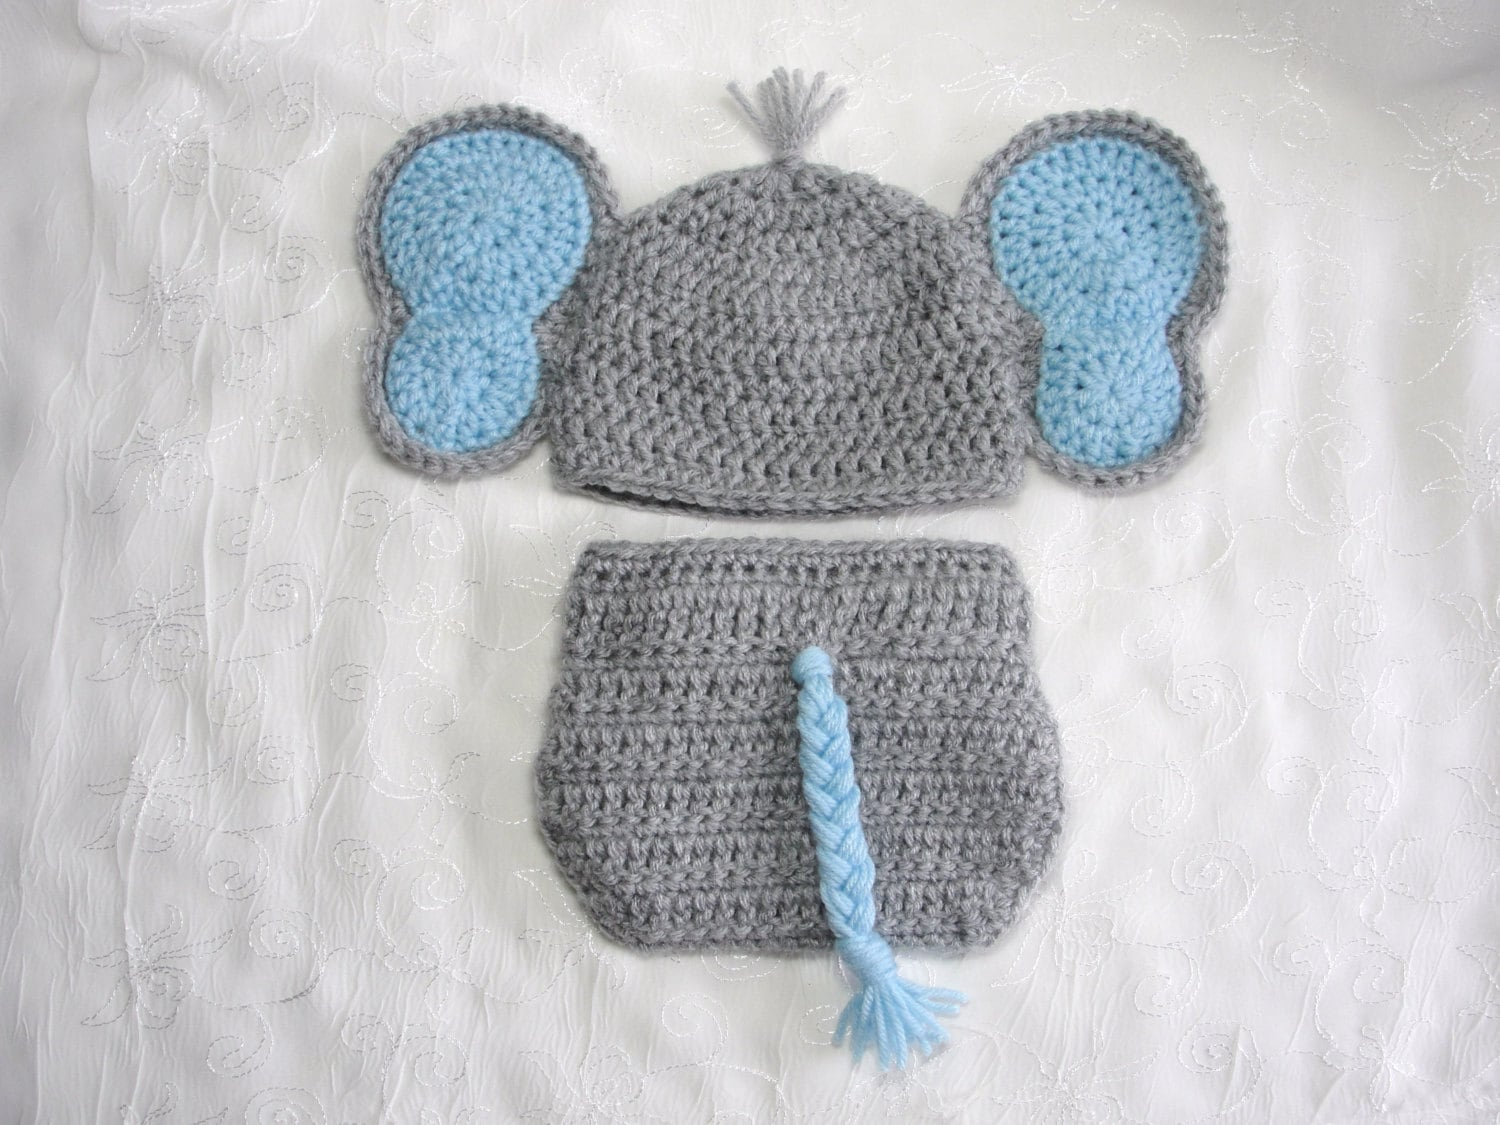 Crochet Pattern For Baby Elephant Hat : free crochet elephant hat and diaper cover pattern Car Tuning